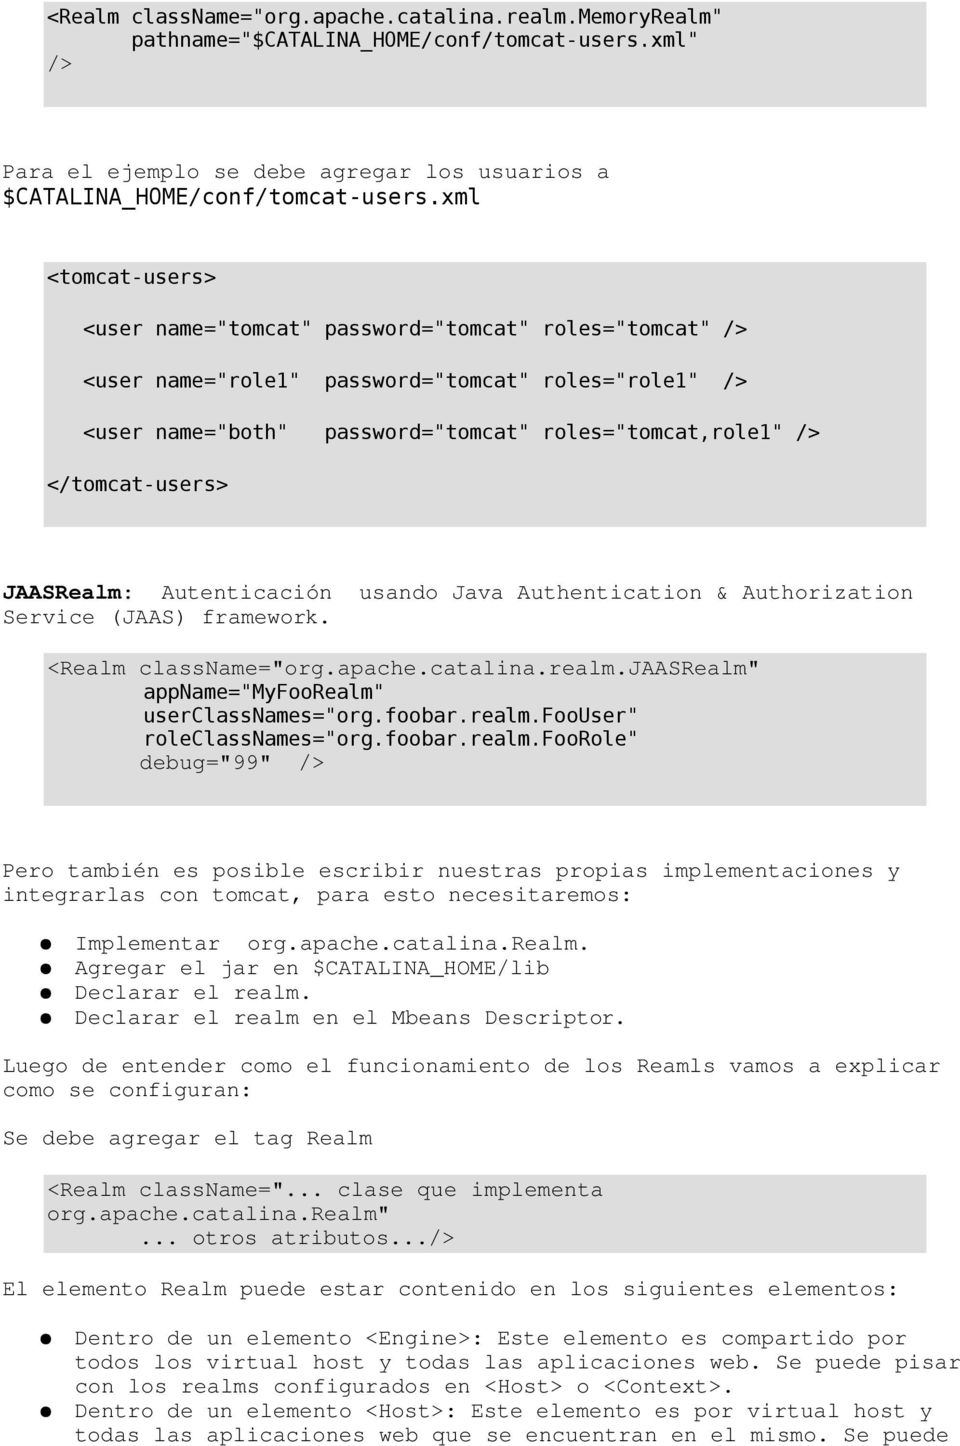 "</tomcat-users> JAASRealm: Autenticación usando Java Authentication & Authorization Service (JAAS) framework. <Realm classname=""org.apache.catalina.realm."